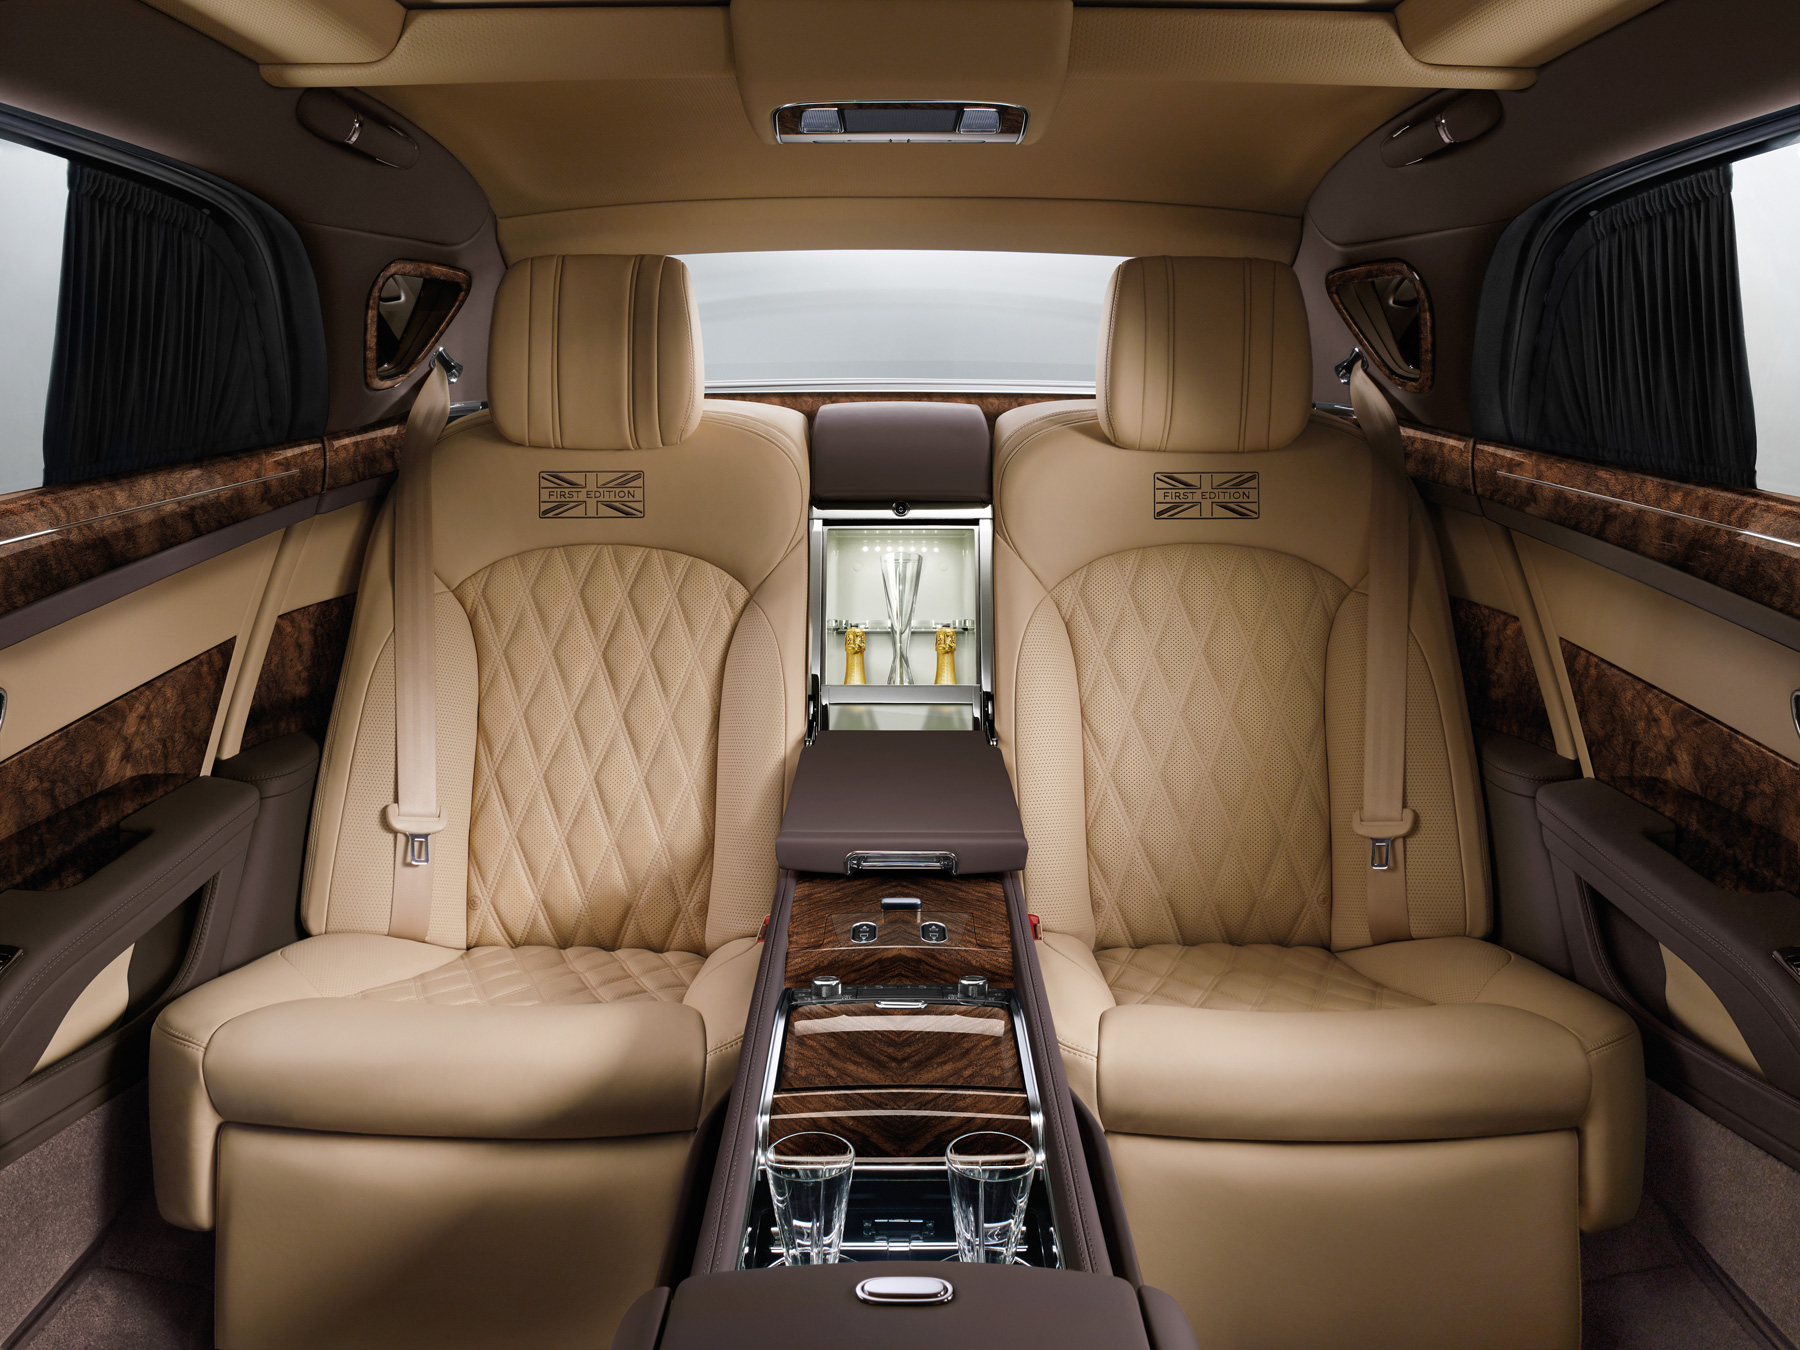 The incredible interior of the Bentley Mulsanne Extended Wheelbase